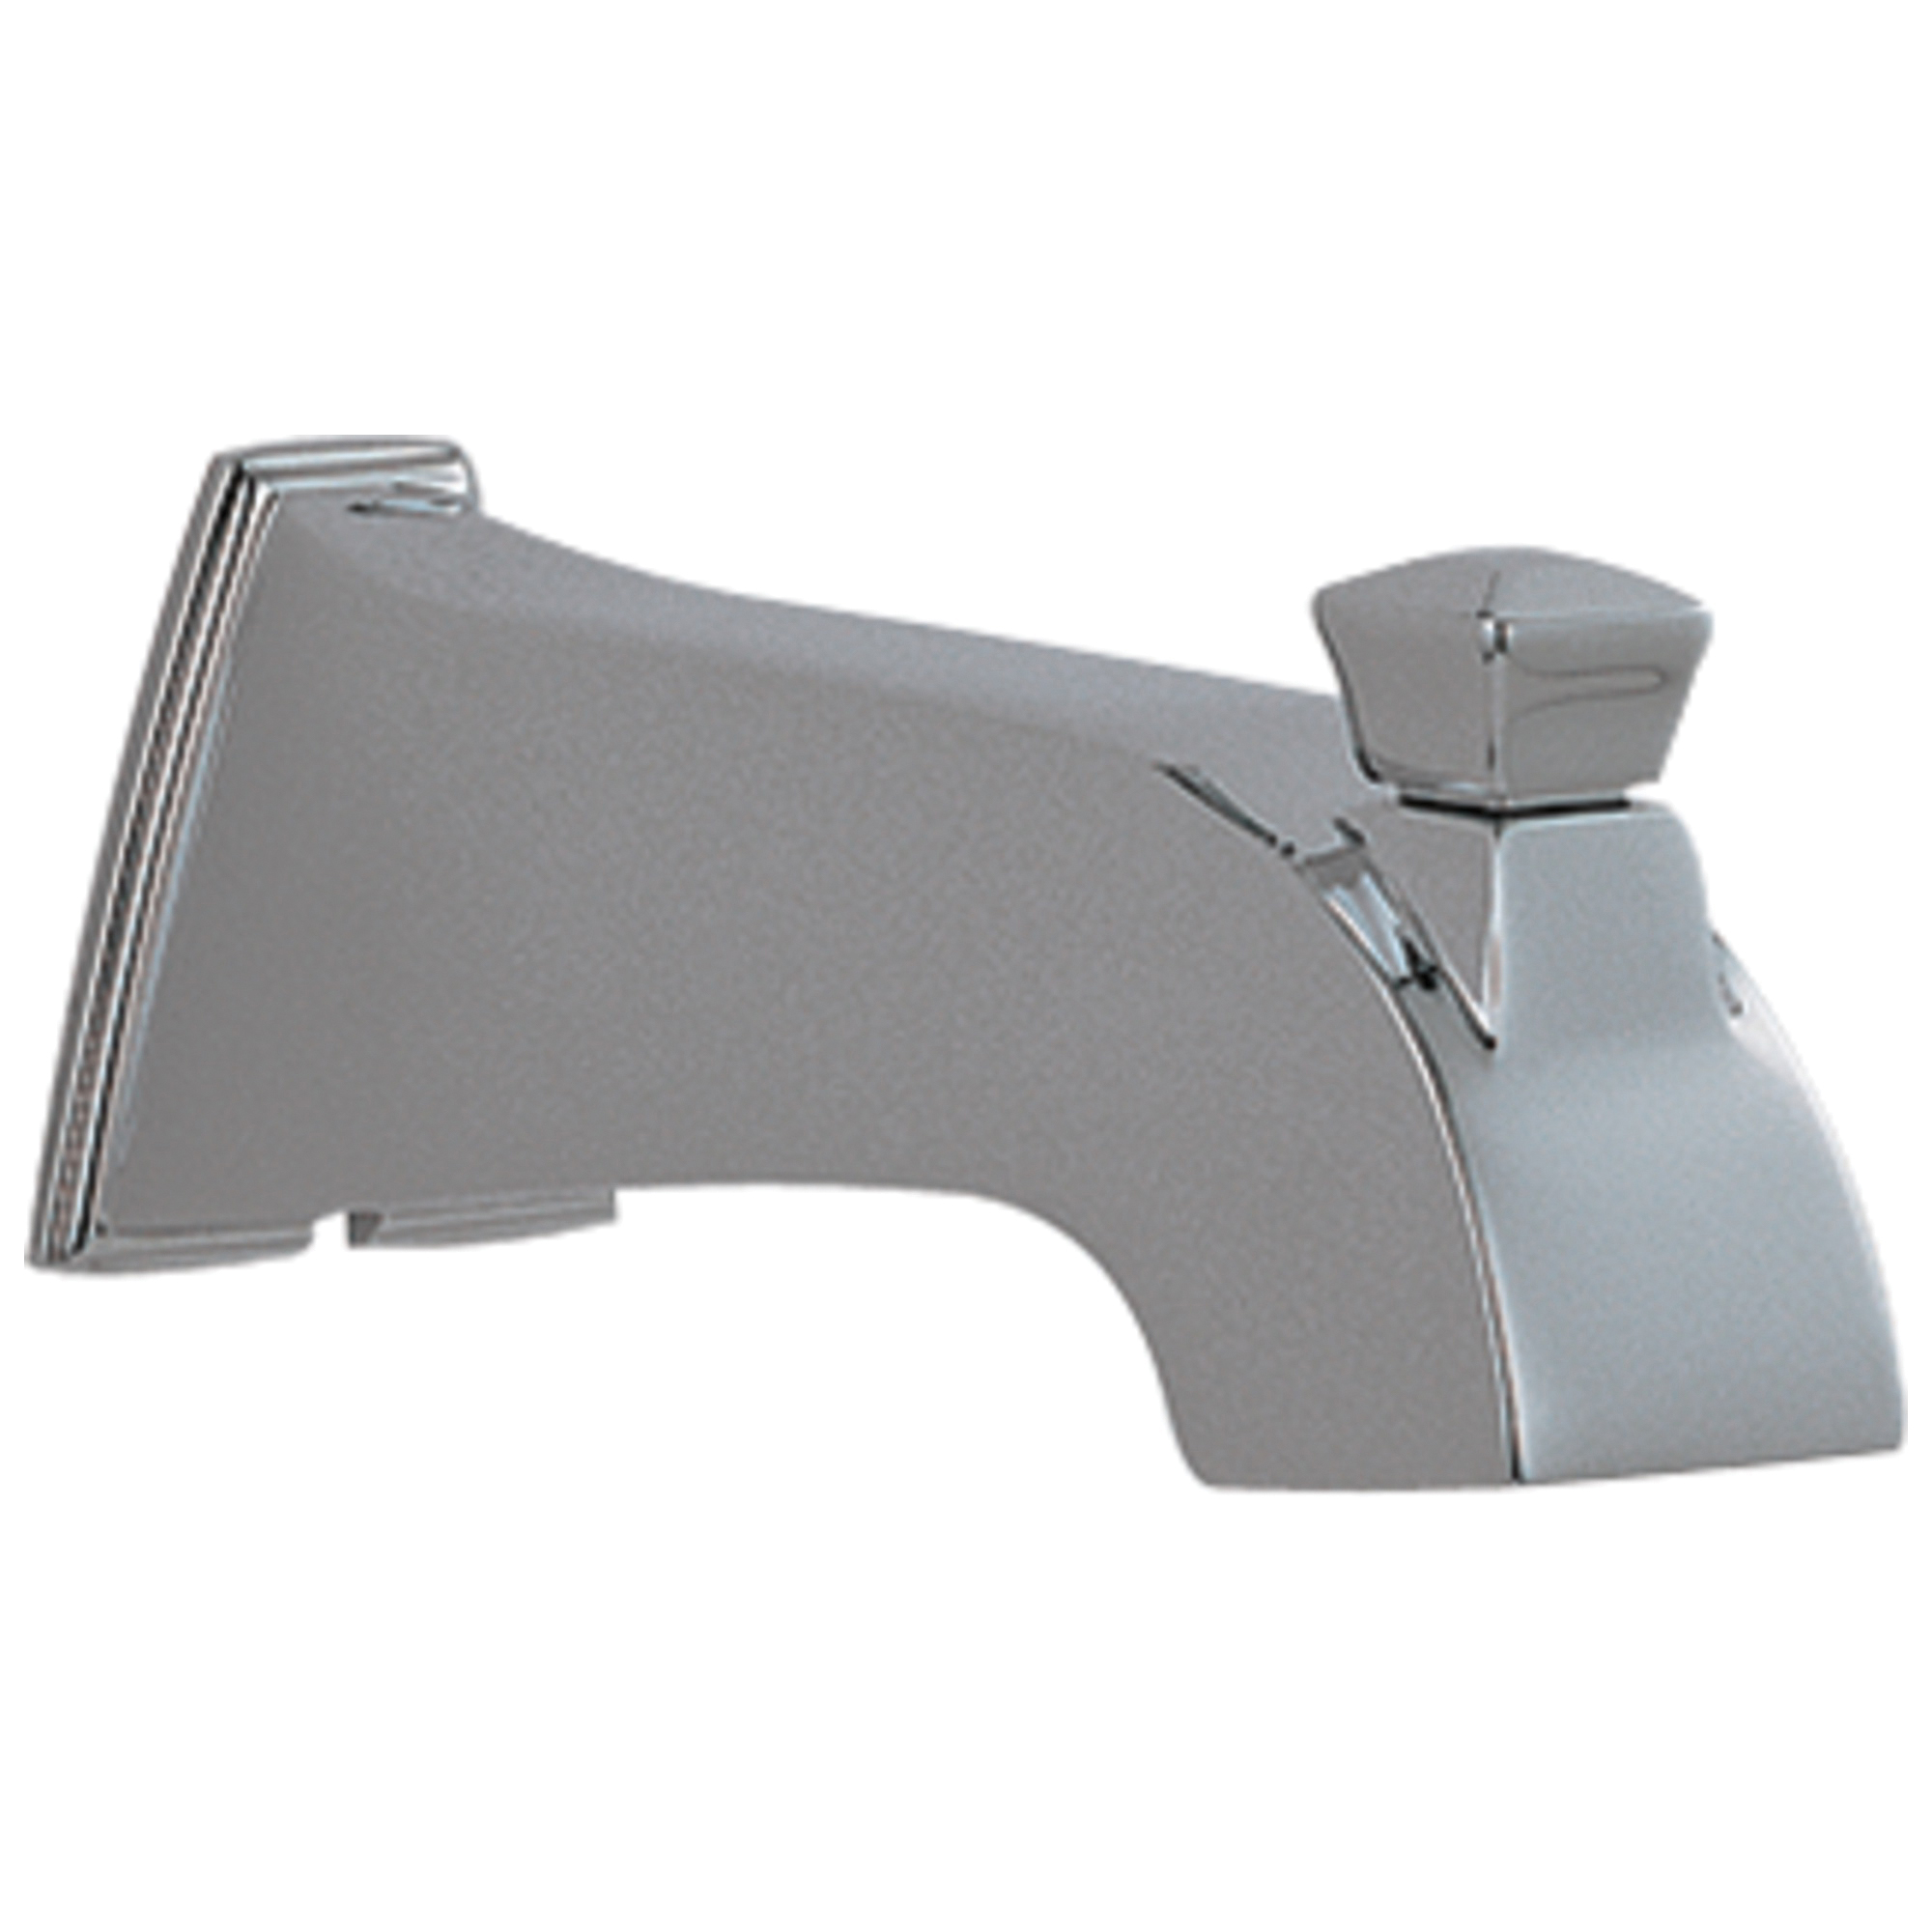 Brizo® RP49126 Vesi® Pull-Up Diverter Spout, For Use With Tub and Shower Faucet Trim, Chrome Plated, Import